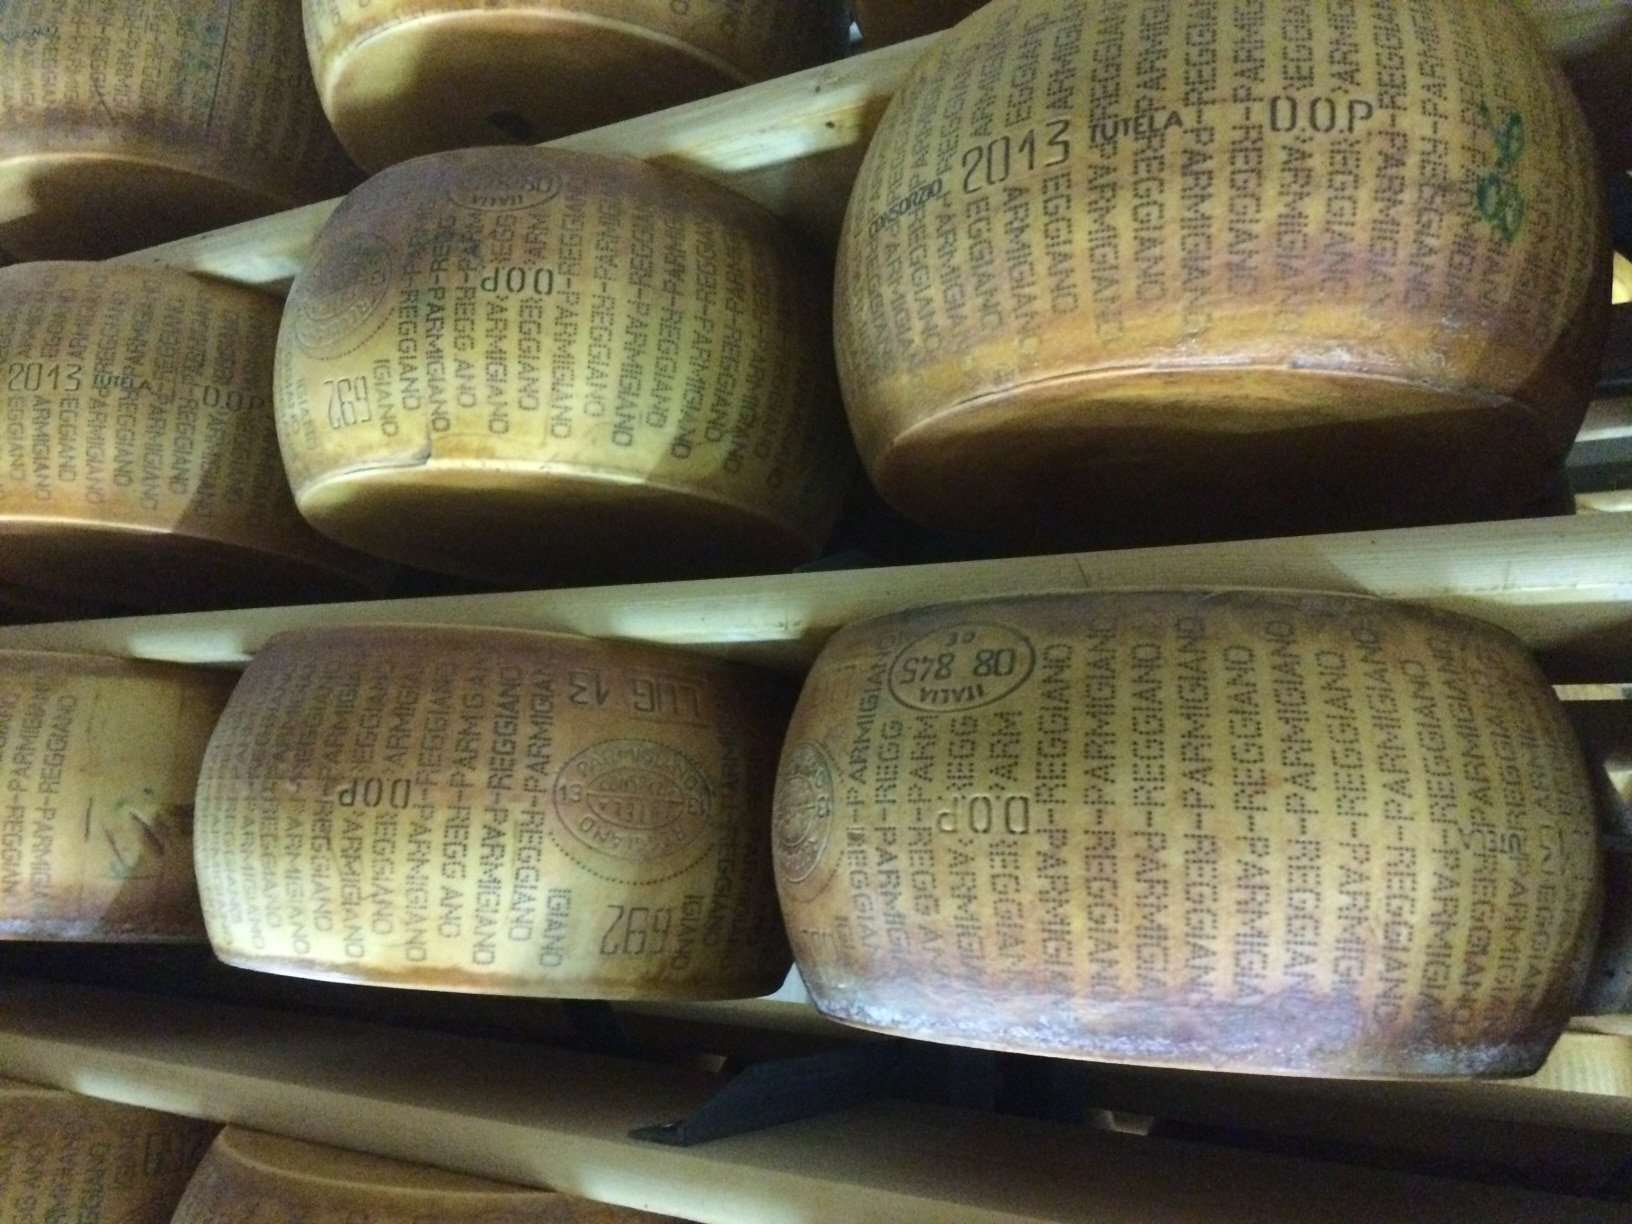 Parmesan wheels are aged for years - here in Emilia Romagna the Parmigiano Reggiano is world famous